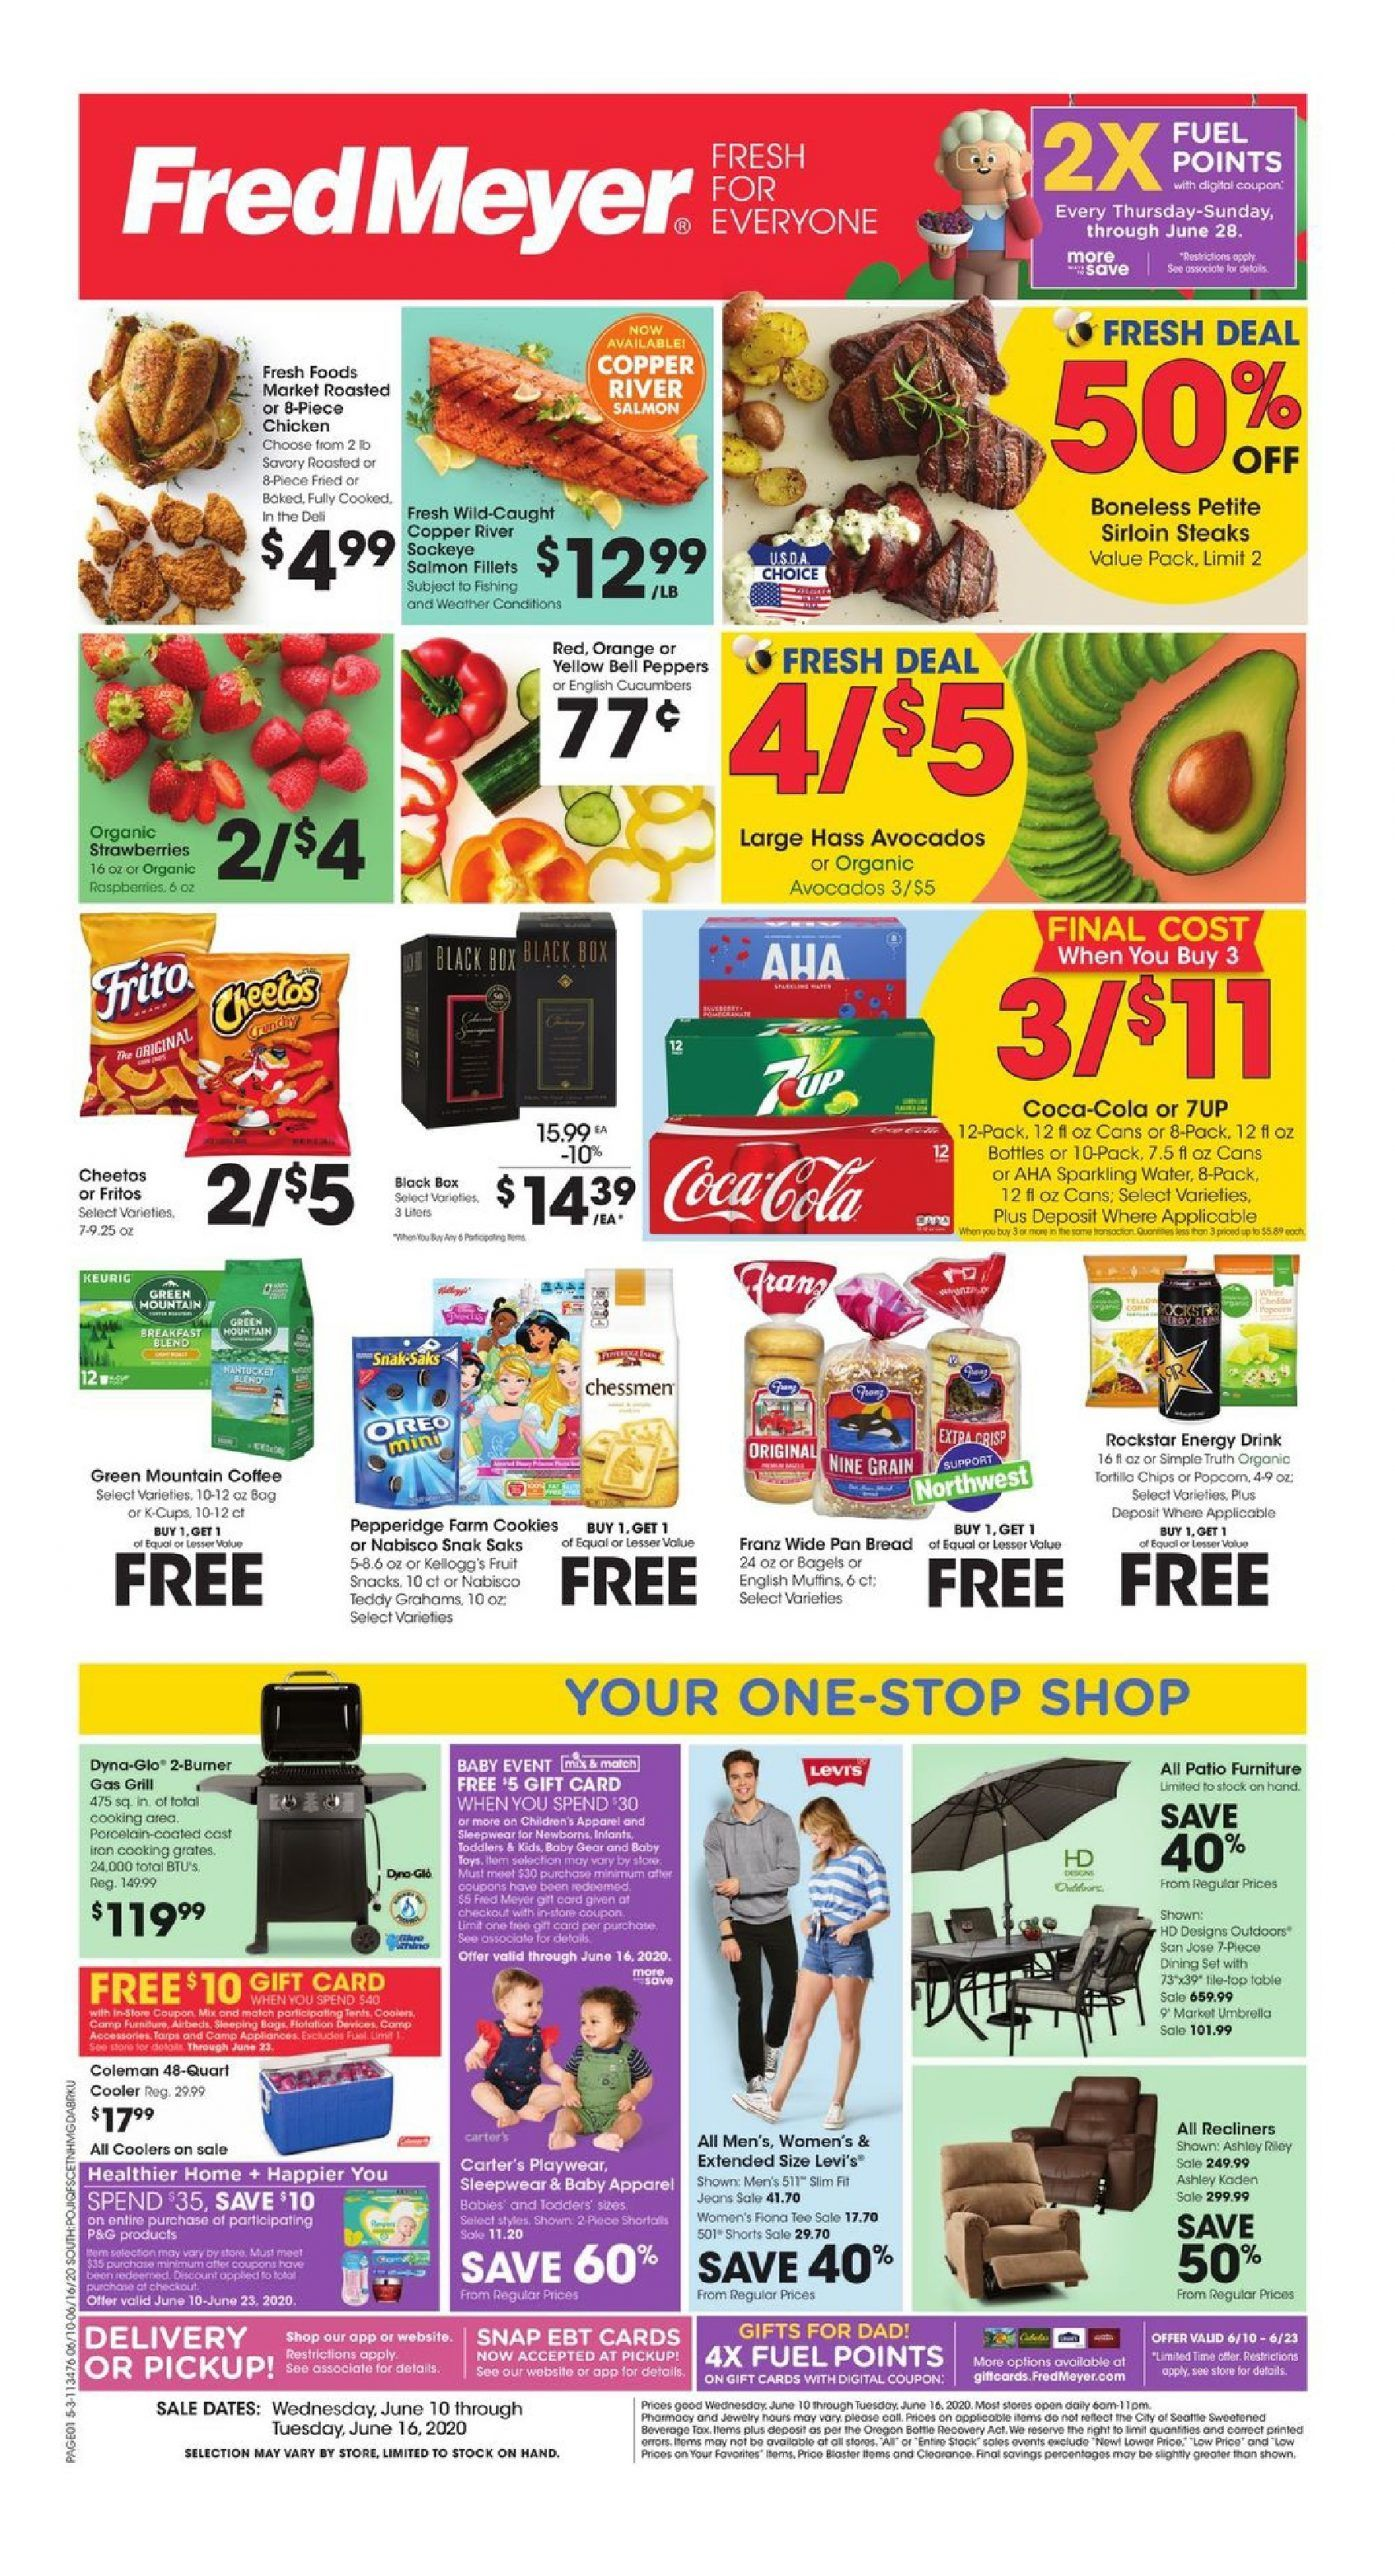 Pin on weekly ads